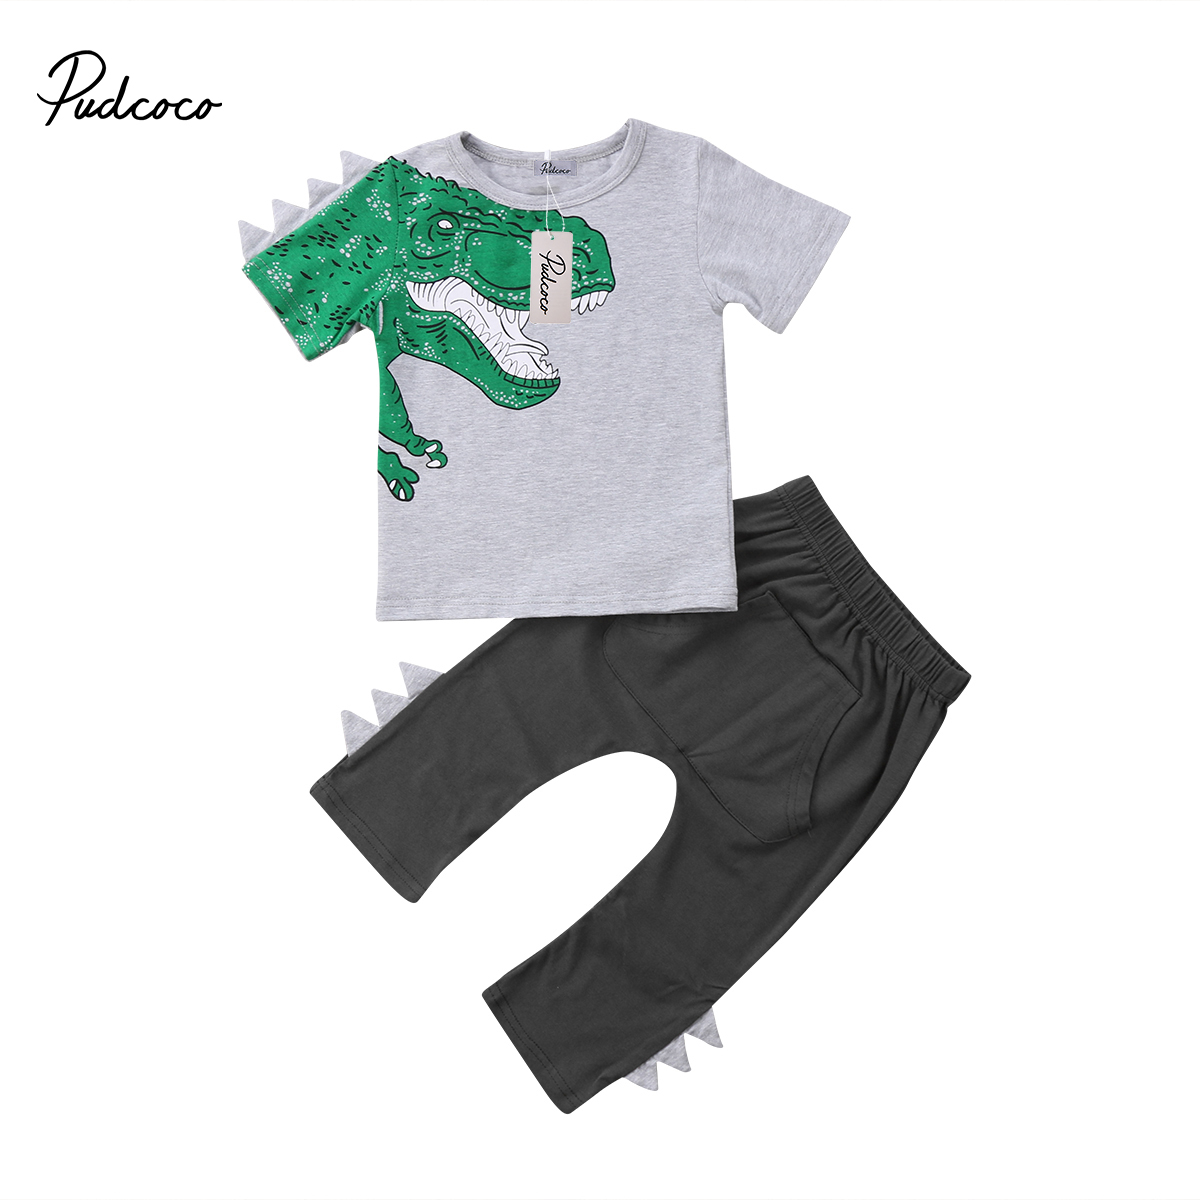 2018 Brand New Toddler Infant Child Kids Baby Boy Dinosaur Short Sleeve Tops Shirt Pants 2Pcs Sets Cartoon Outfits Clothes 1-5T 2pcs toddler kids baby boy clothes sets t shirt tops short sleeve pants harem outfits set cotton clothing baby boys 1 6t